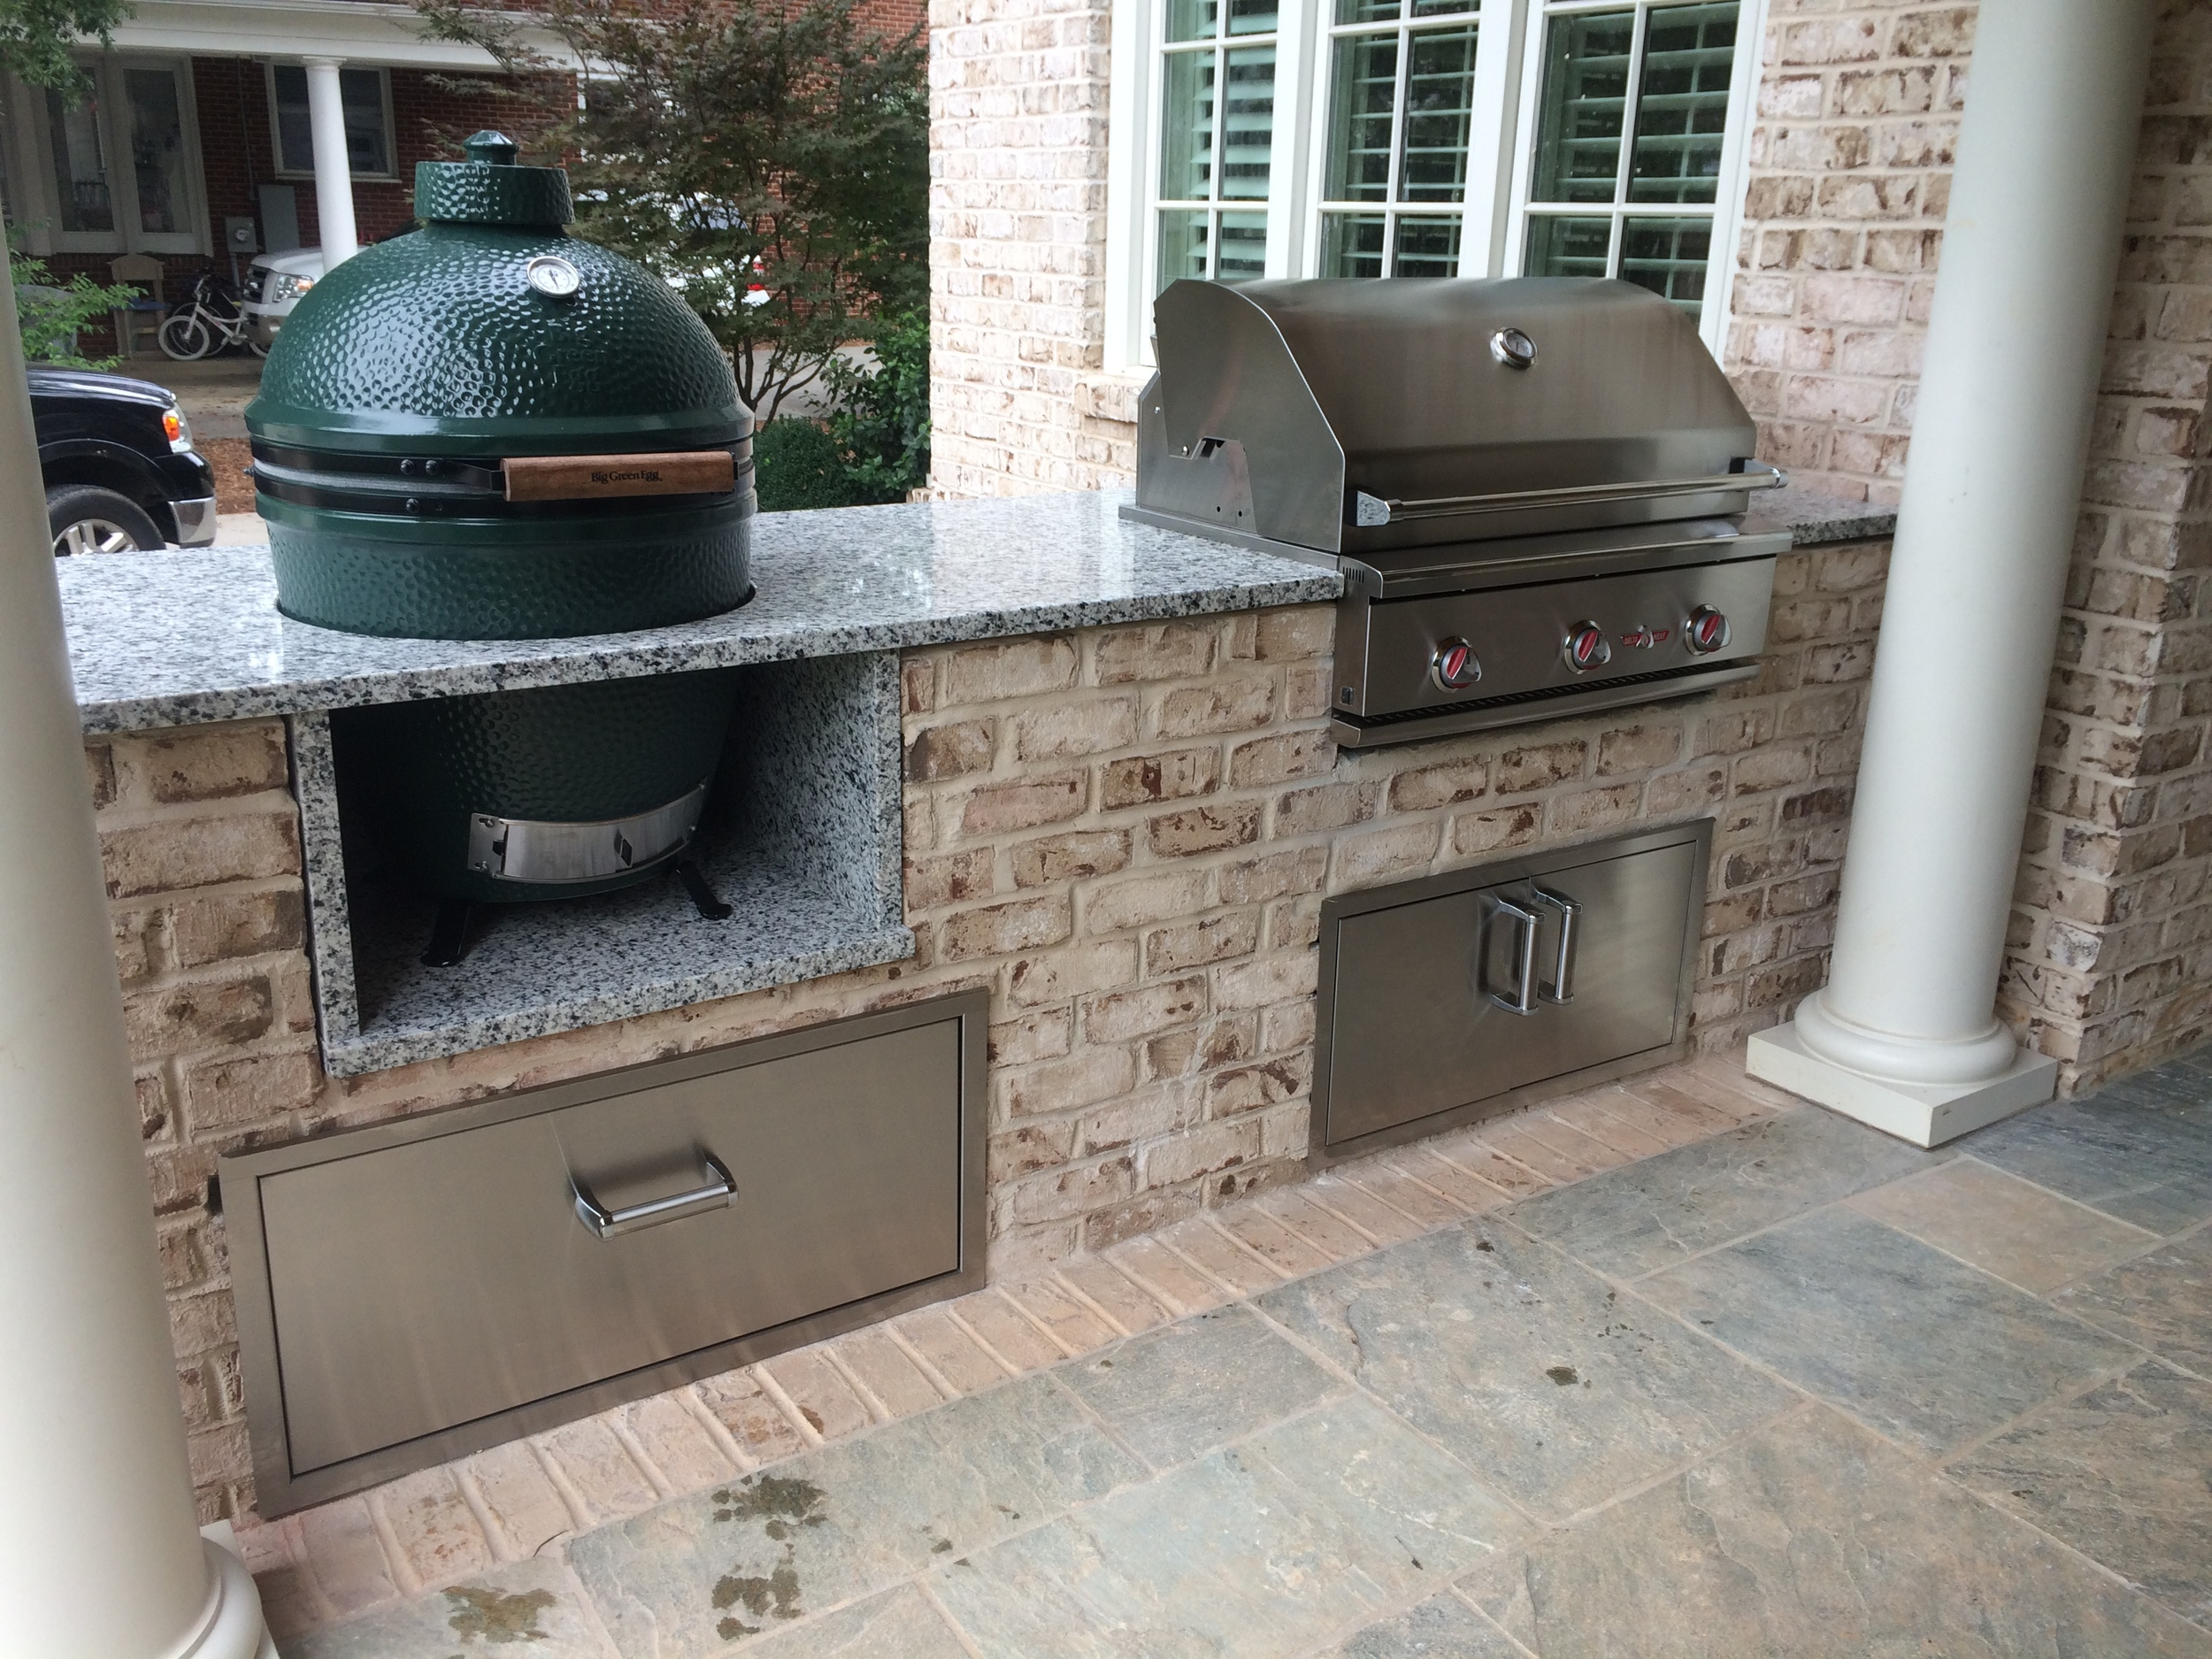 Outdoor Kitchen with Big Green Egg and Delta Heat Grill